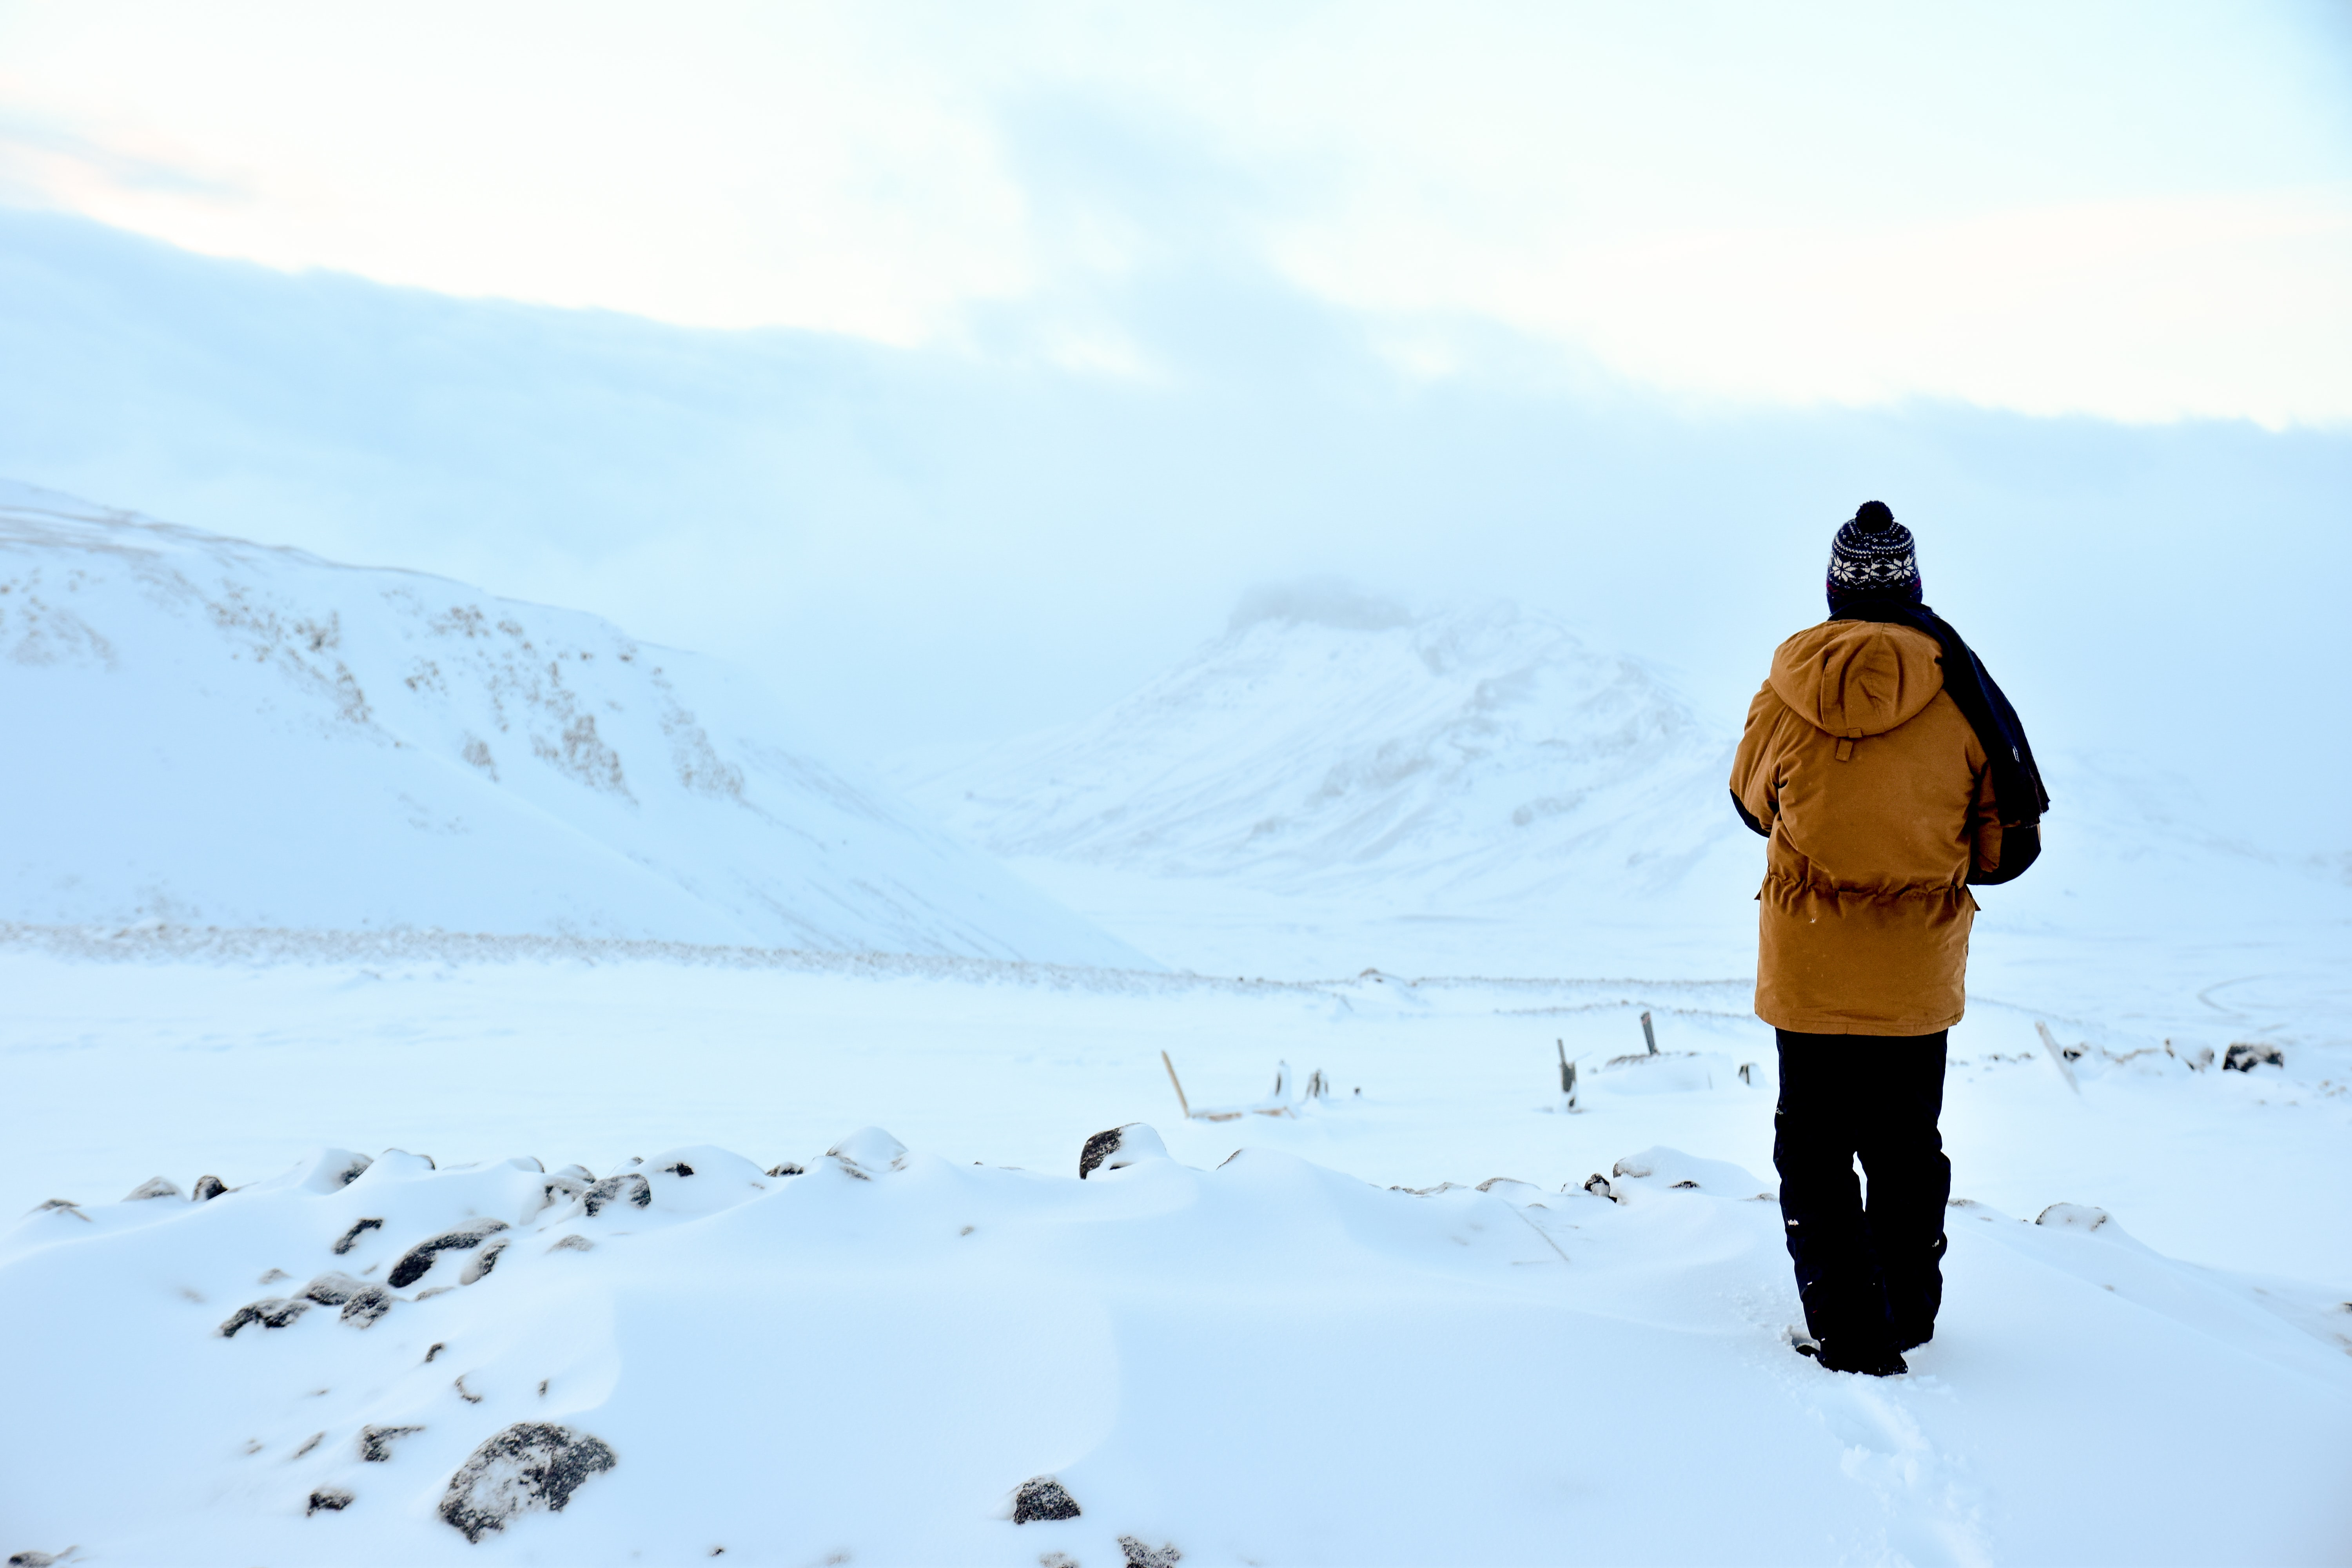 person walking on snow filled area